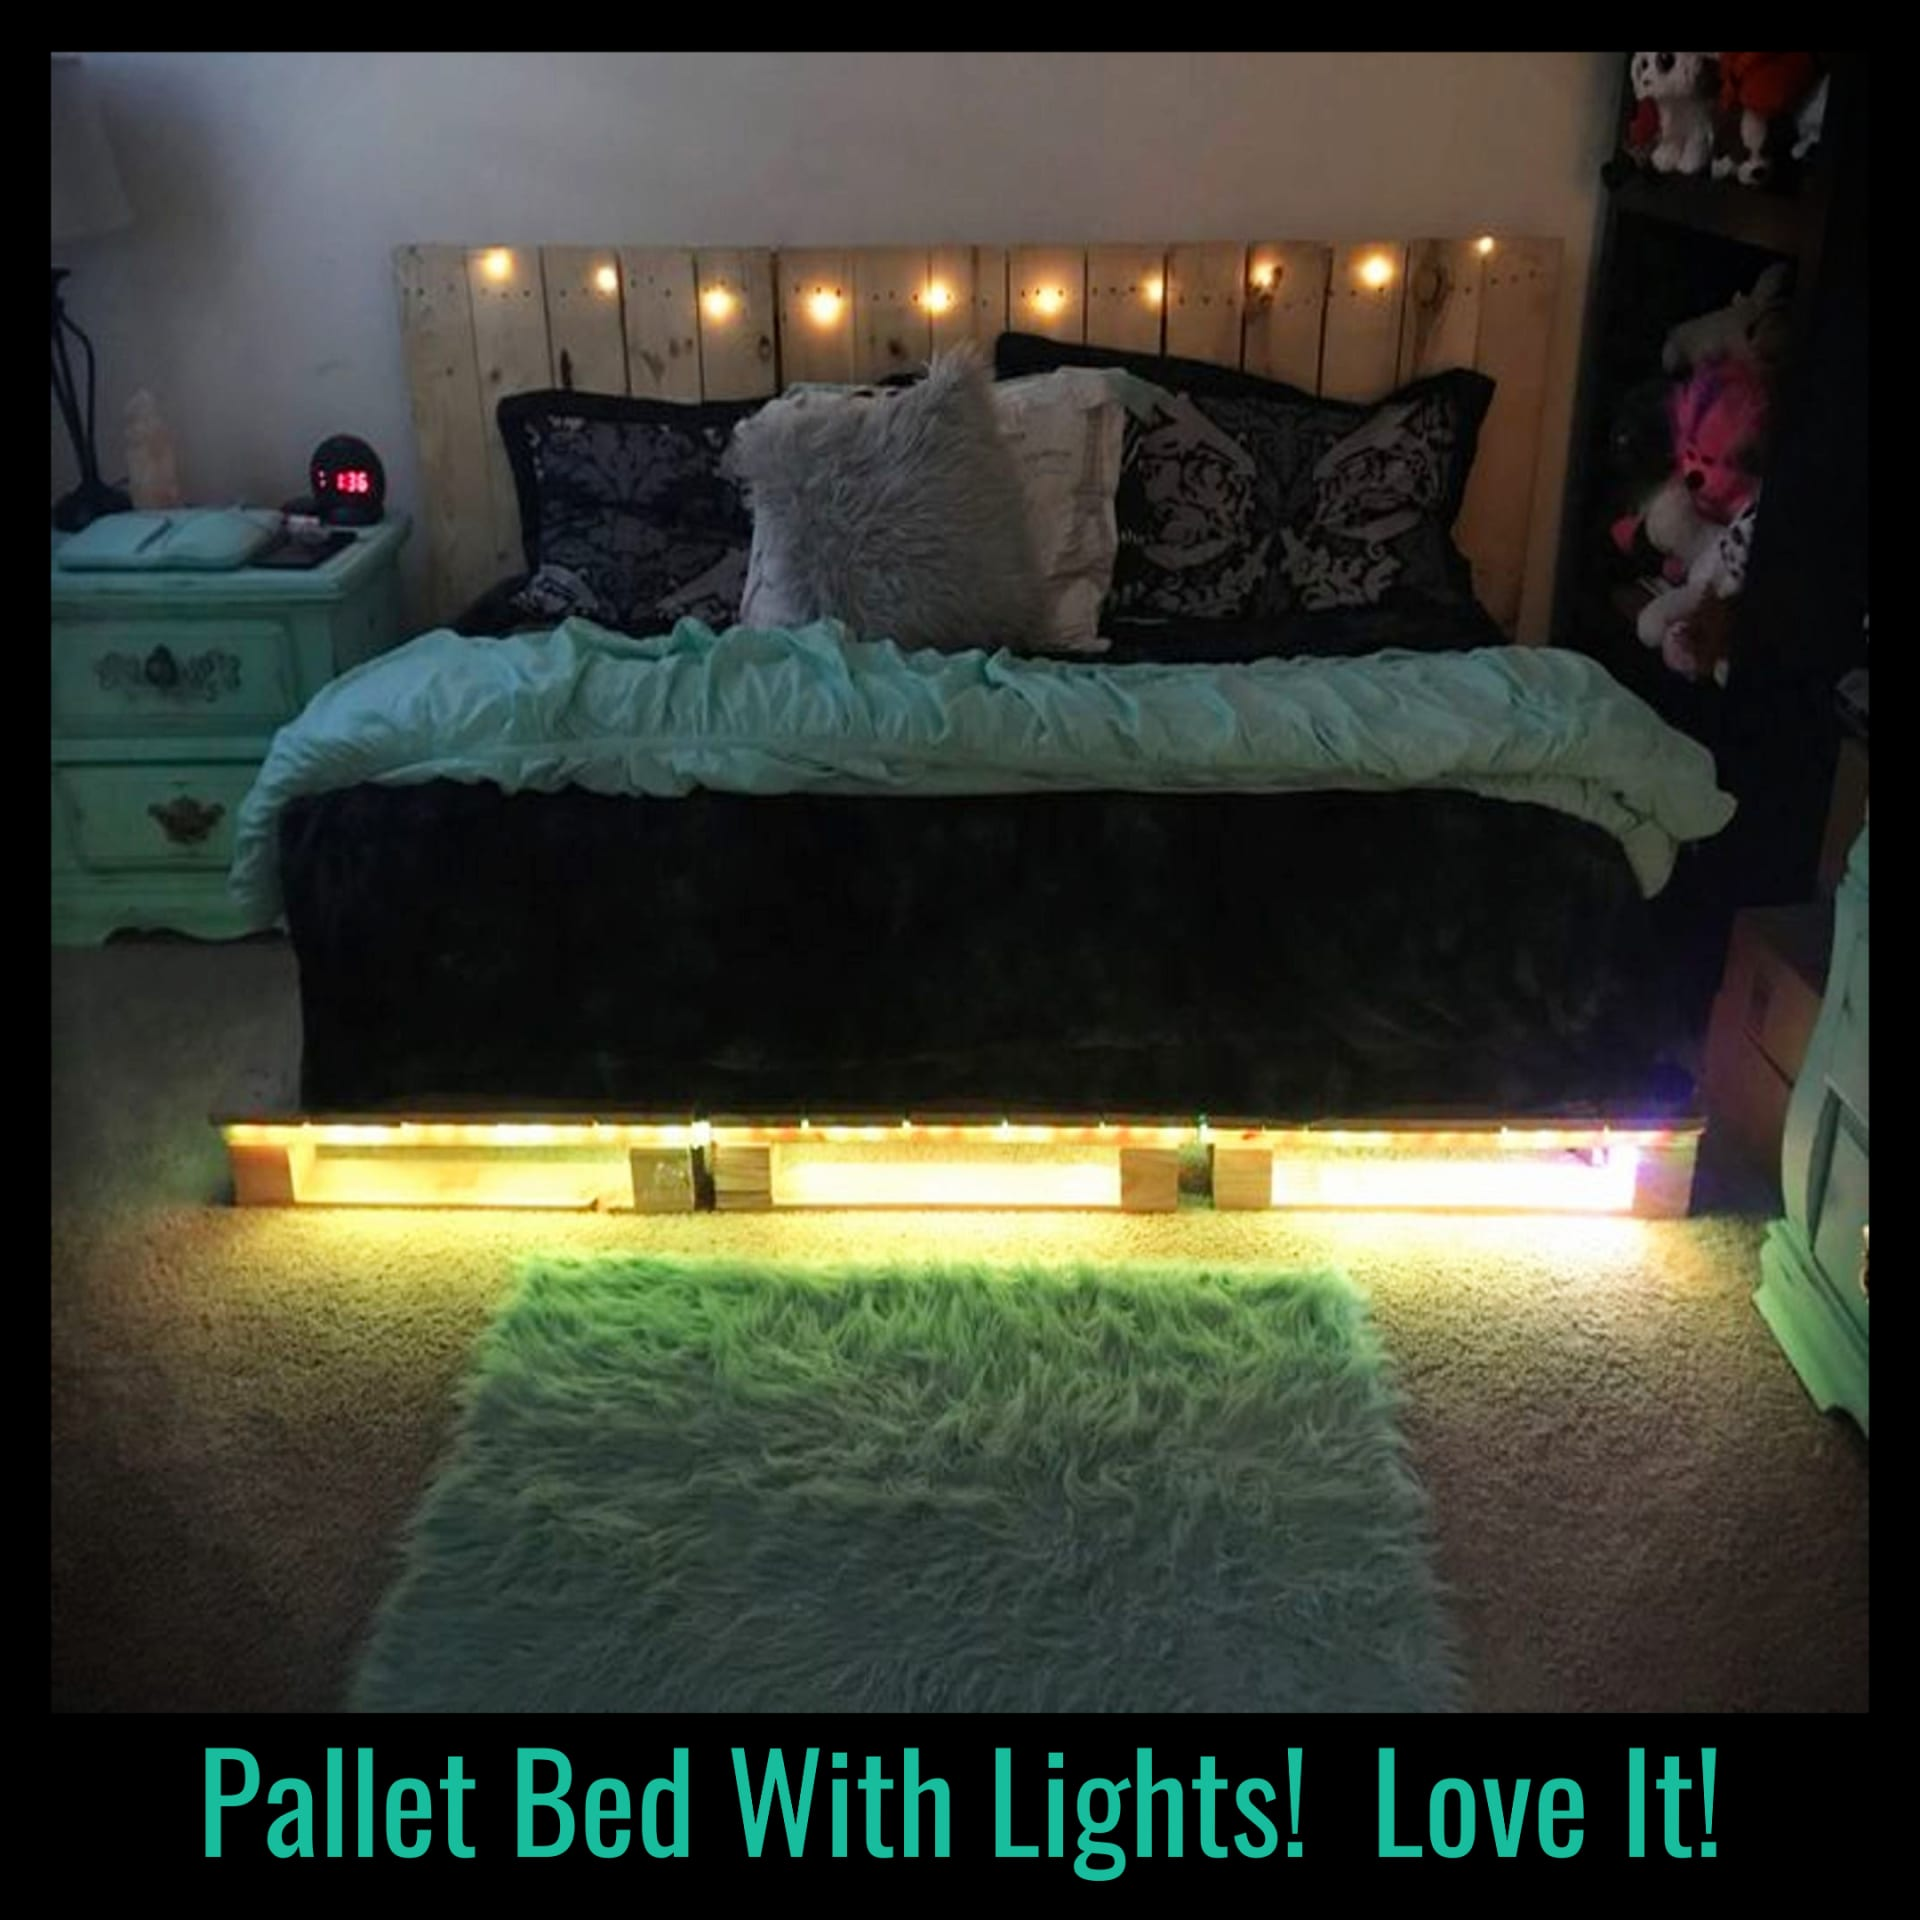 Pallet projects - easy DIY pallet furniture projects - Pallet bed with lights!  How to make a pallet bed and other simple pallet projects to make or sell for beginners